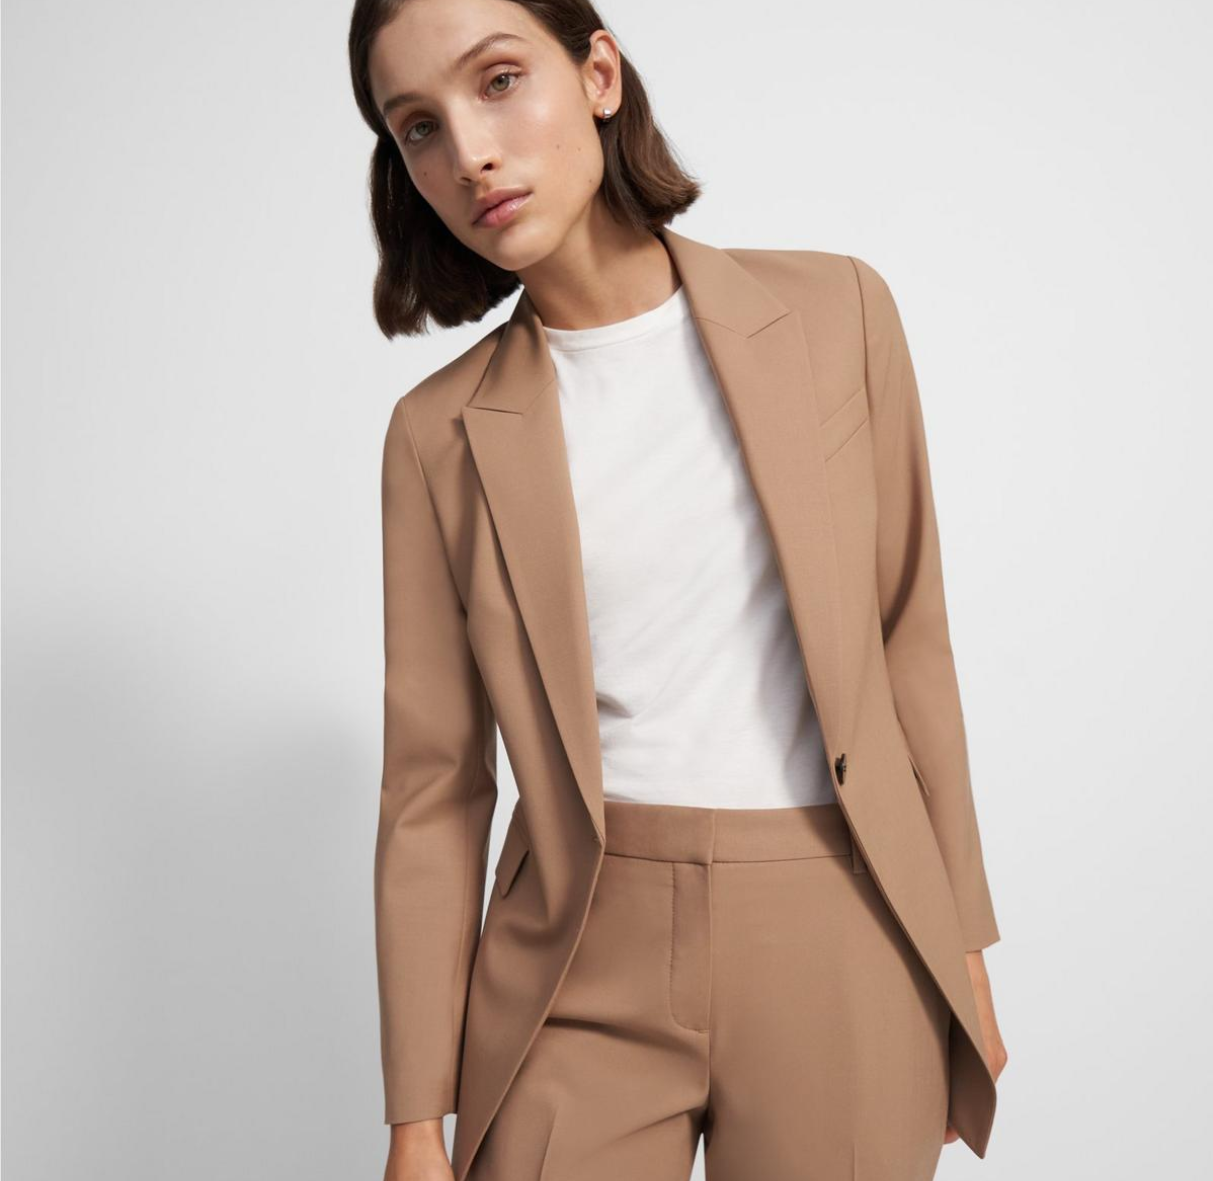 Theory: 30% off select blazers and pants